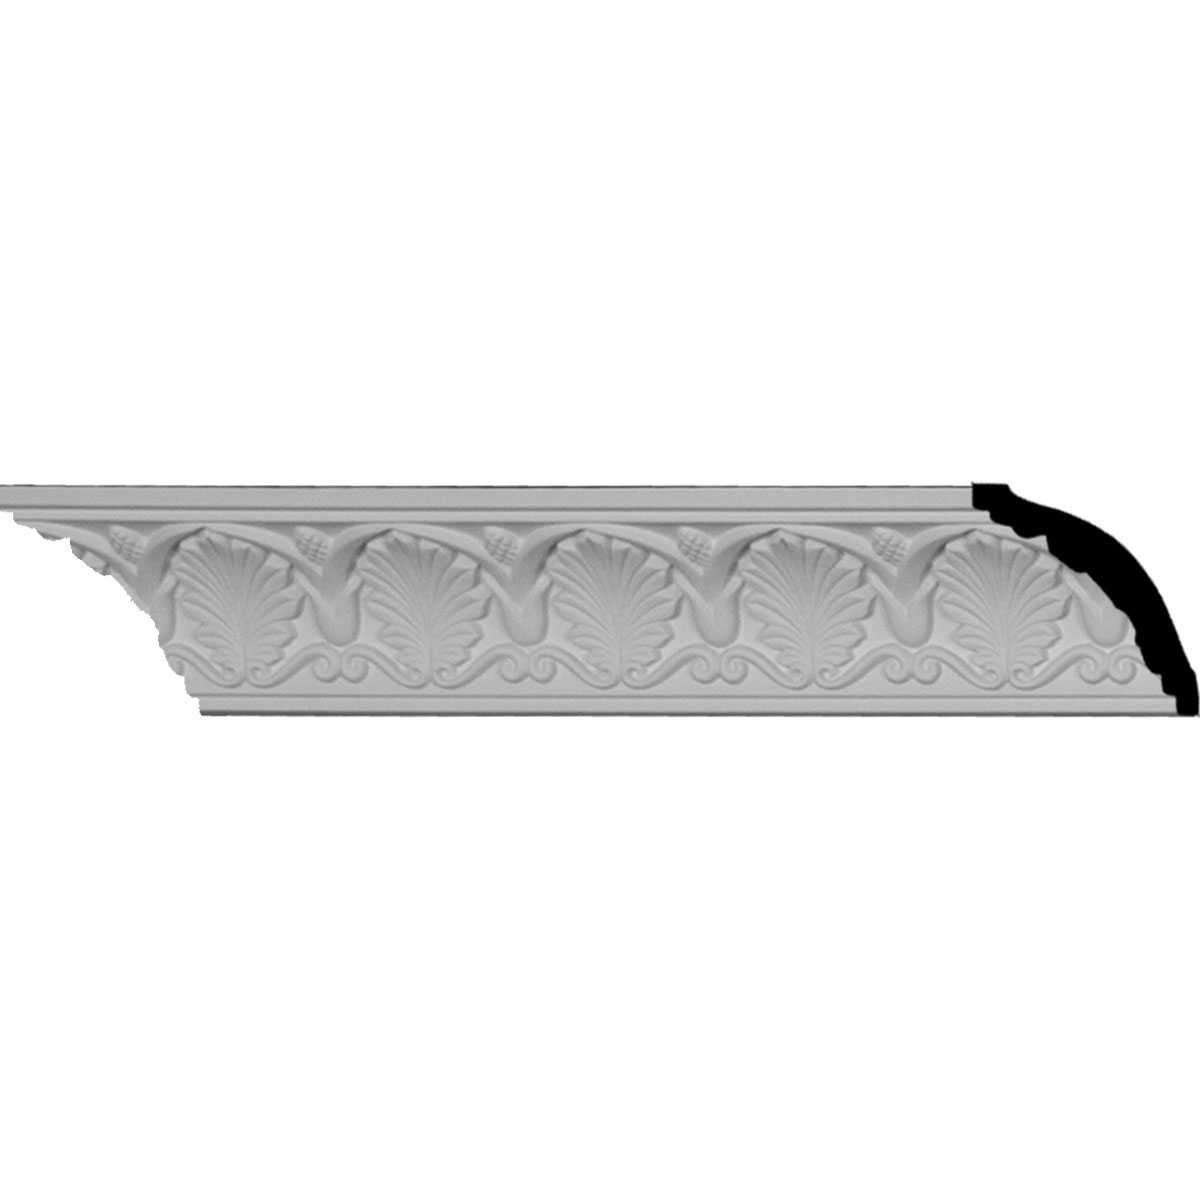 2 1/2'H x 2 1/2'P x 3 5/8'F x 96 1/8'L, (2 3/4' Repeat), Bonetti Crown Moulding